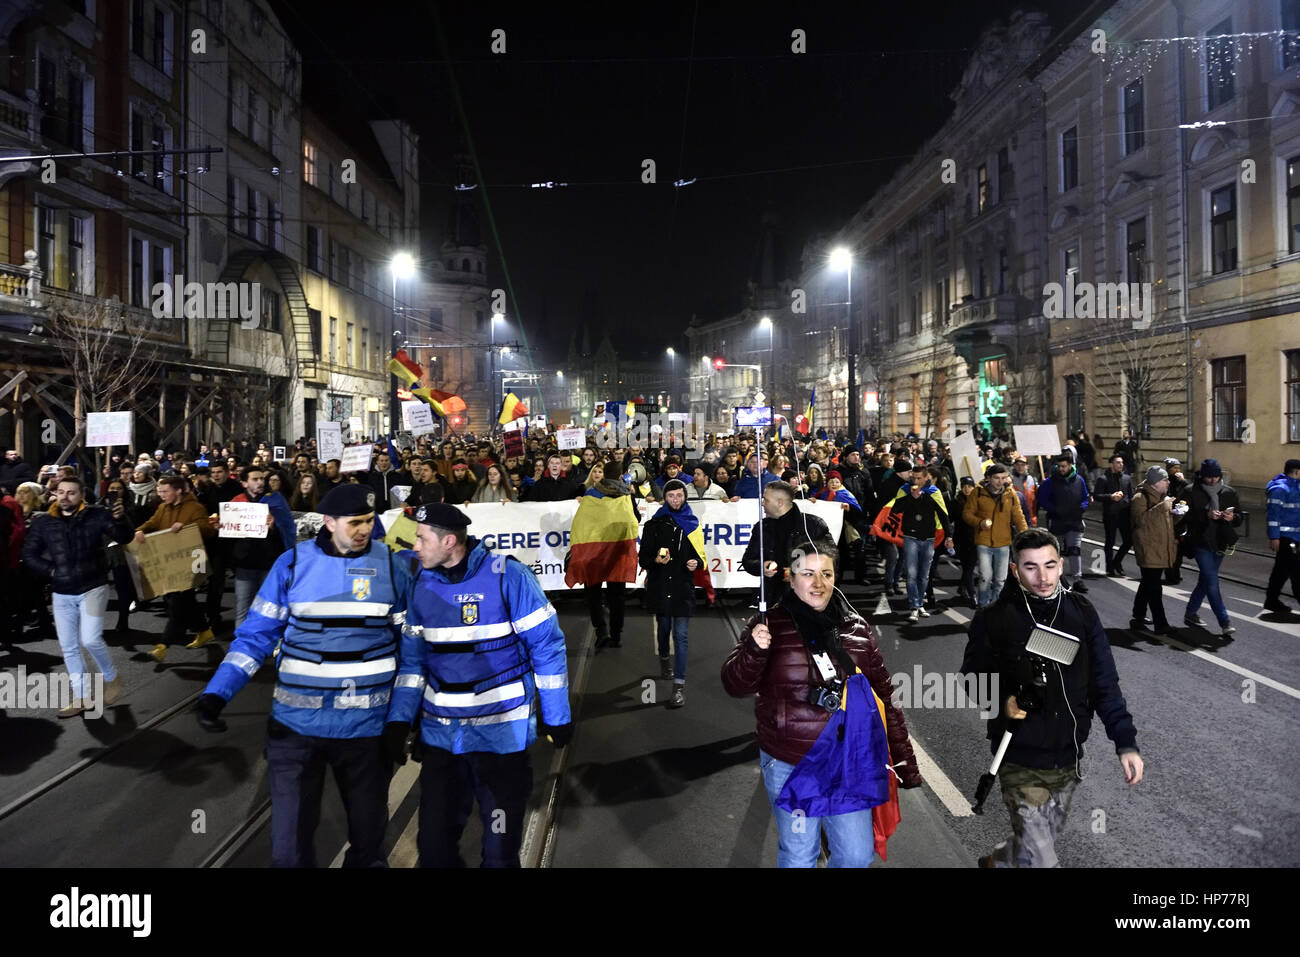 CLUJ NAPOCA, ROMANIA - FEBRUARY 4, 2017: More than 50,000 people protesting against the Romanian government's - Stock Image